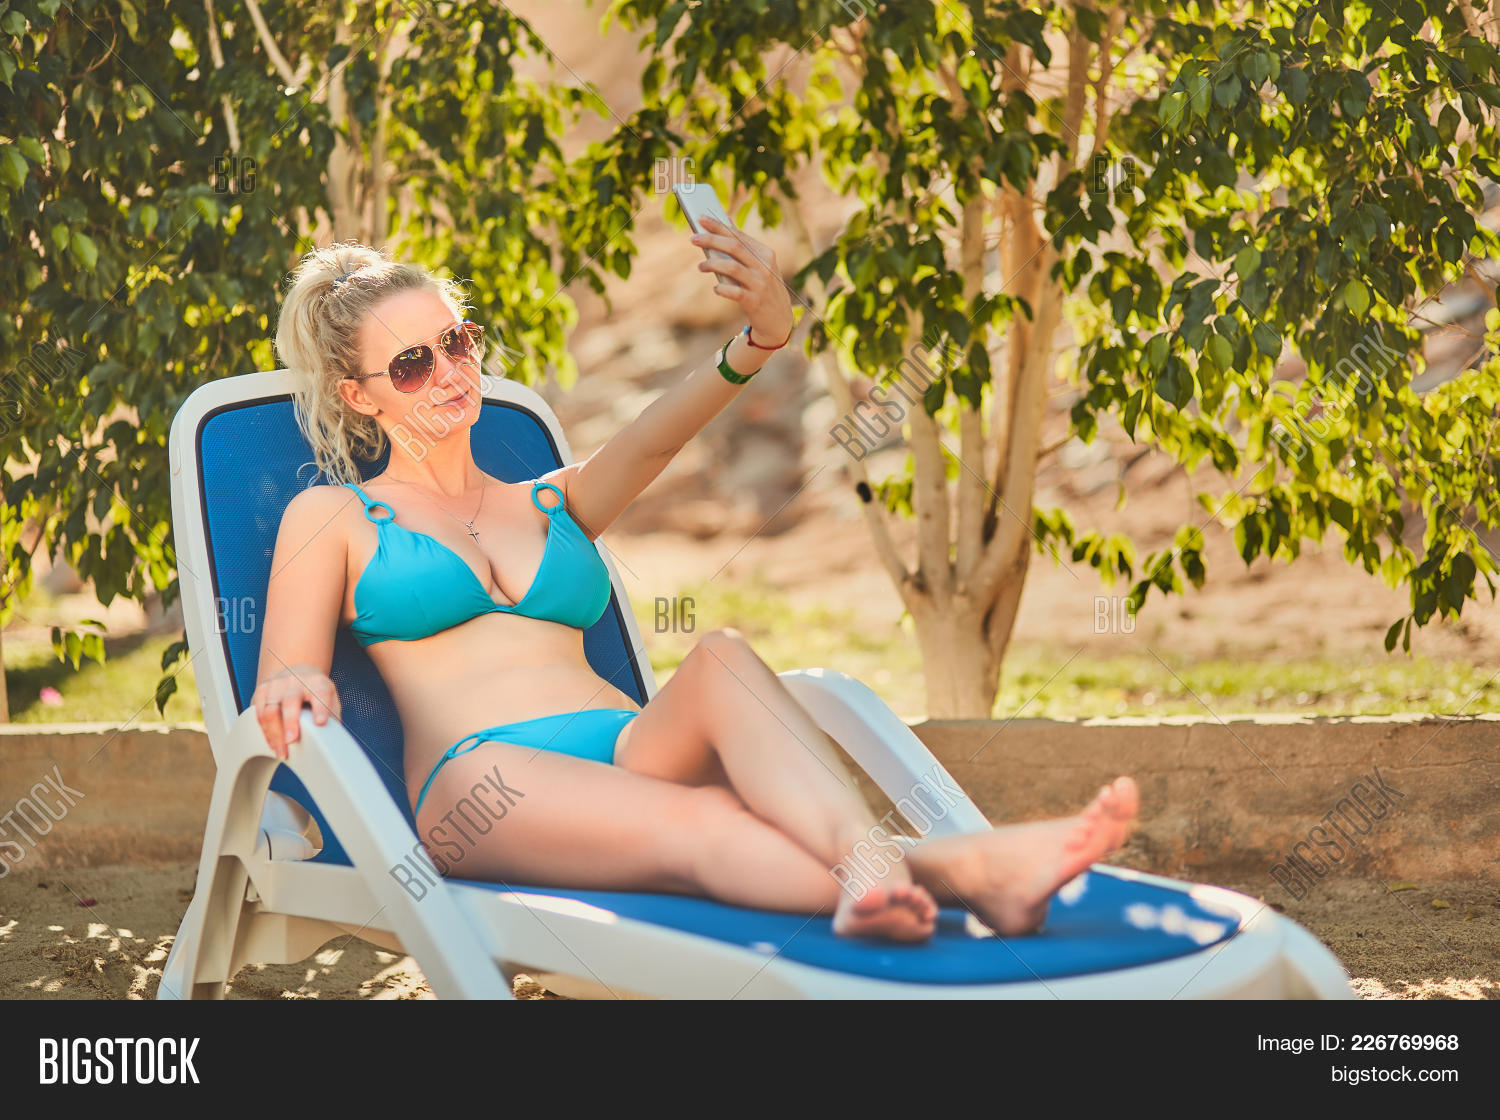 Young Woman Relaxing Image & Photo (Free Trial) | Bigstock